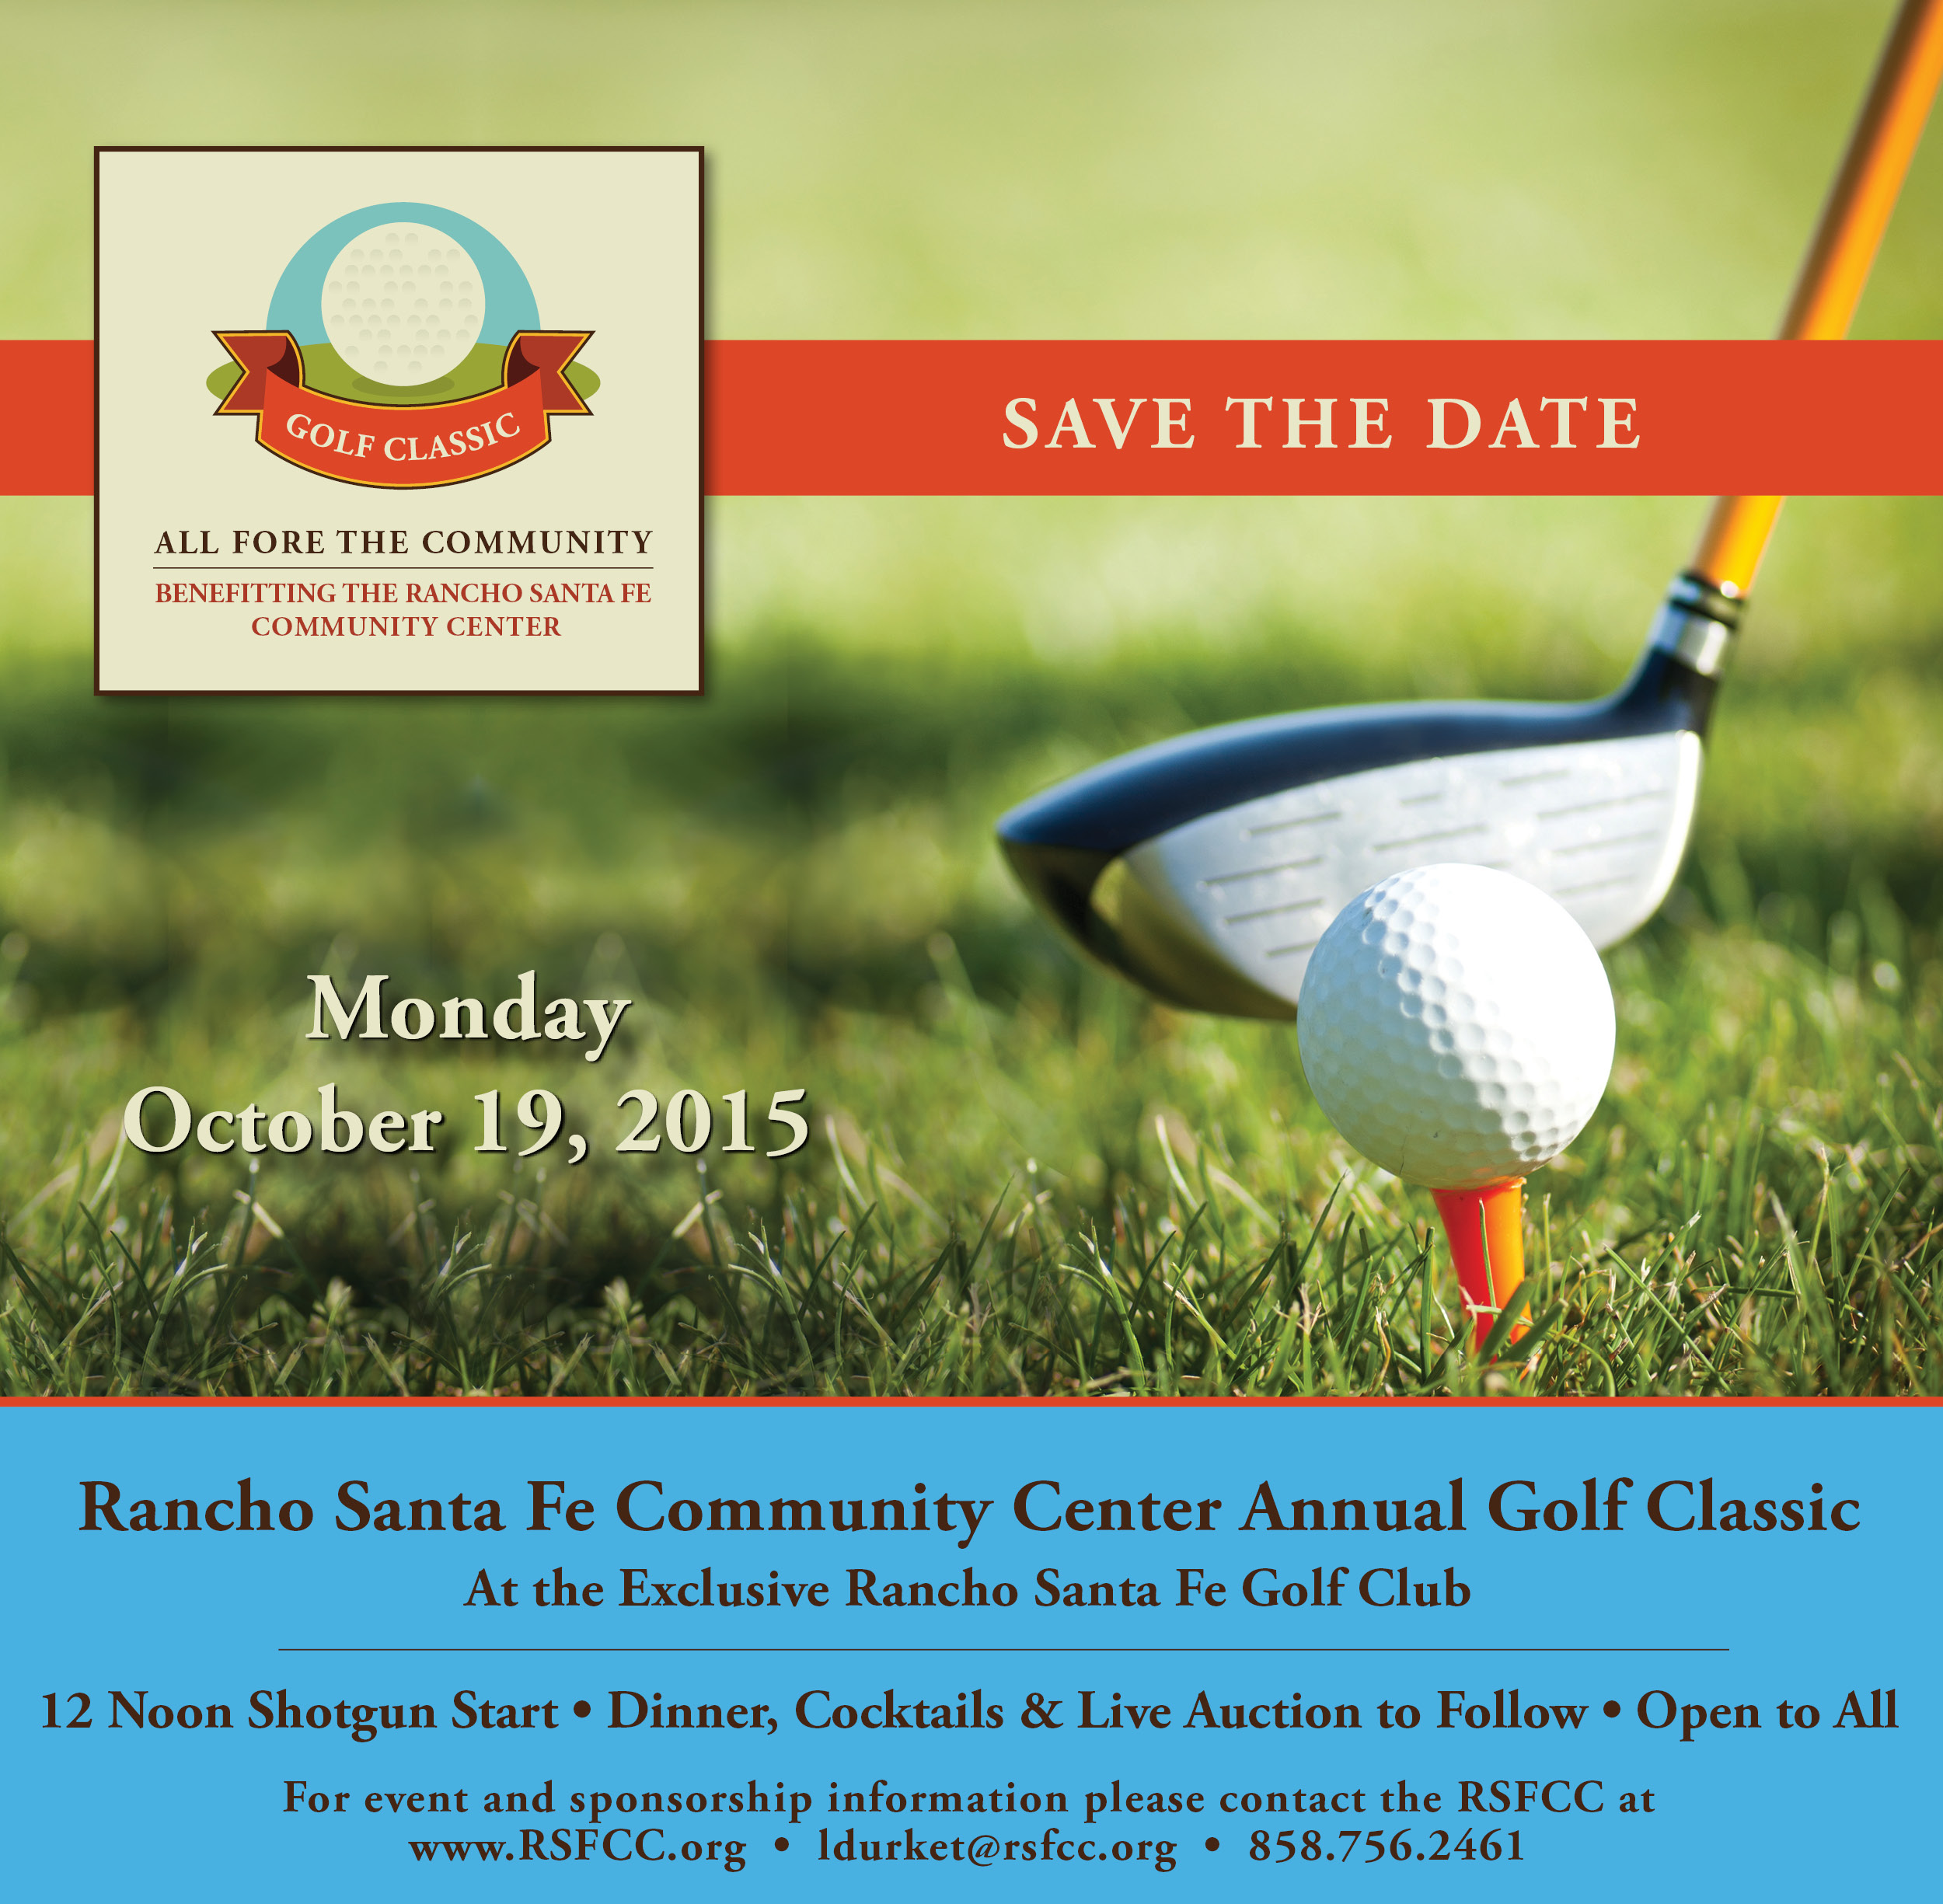 Save_The_Date___RSFCC_GOLF_CLASSIC__.jpg